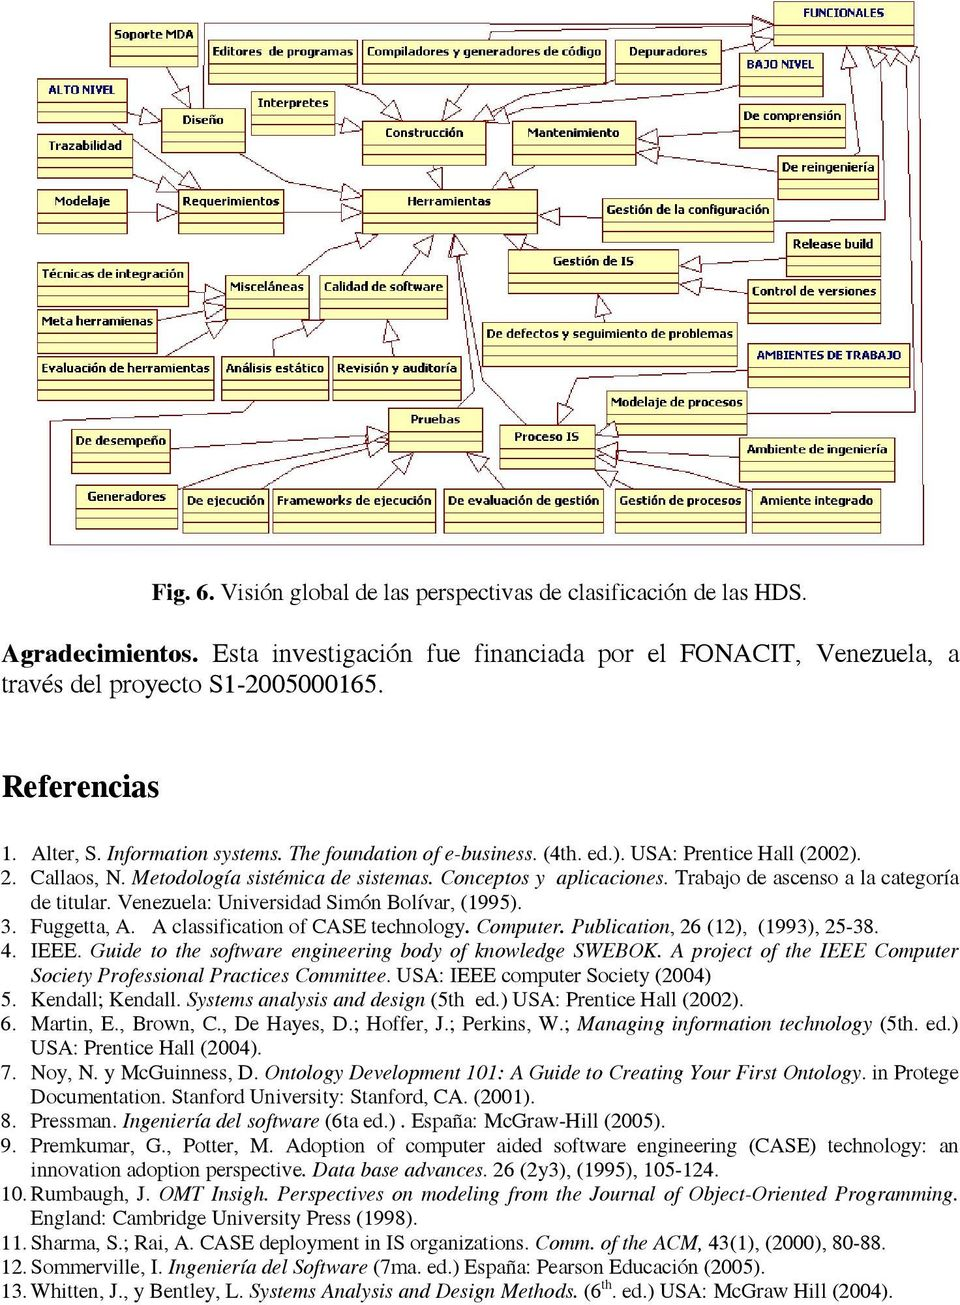 Trabajo de ascenso a la categoría de titular. Venezuela: Universidad Simón Bolívar, (1995). 3. Fuggetta, A. A classification of CASE technology. Computer. Publication, 26 (12), (1993), 25-38. 4. IEEE.